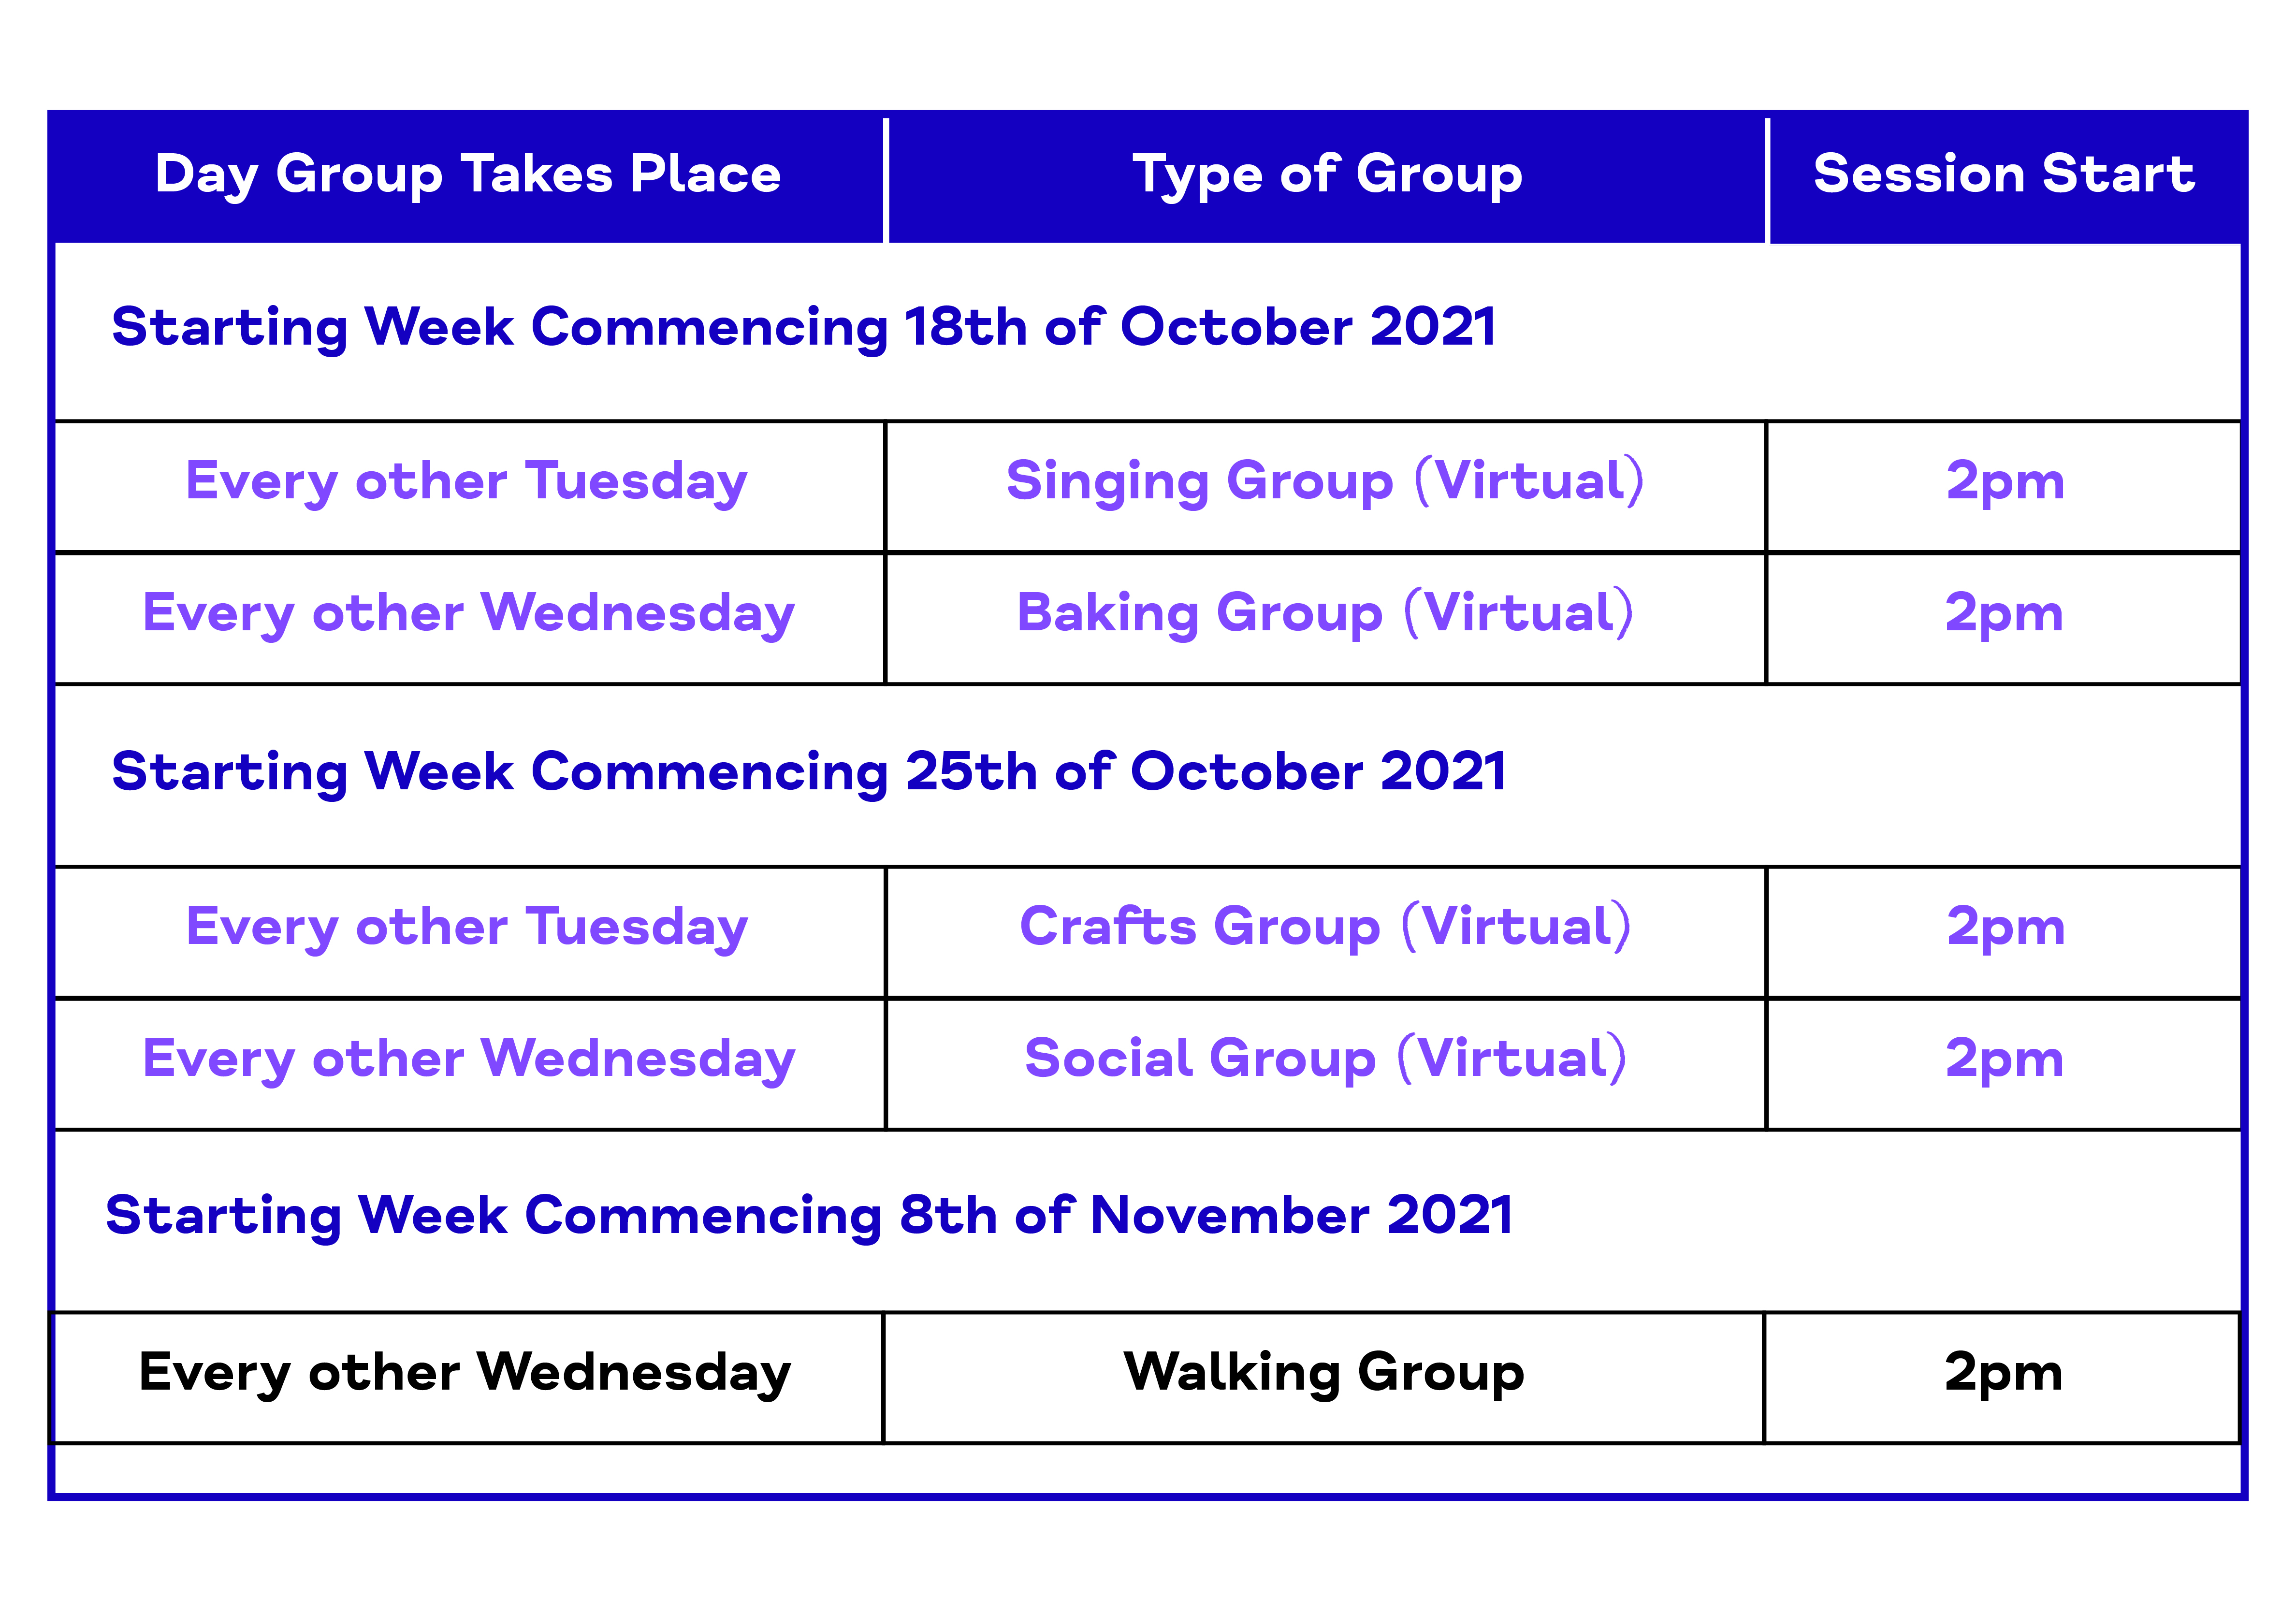 Day Group Takes Place. Type of Group. Session Start. Starting Week Commencing 18th of October 2021. Every other Tuesday. Singing Group (Virtual). 2pm. Every other Wednesday. Baking Group (Virtual). 2pm.  Starting Week Commencing 25th of October 2021.  Every other Tuesday. Crafts Group (Virtual). 2pm. Every other Wednesday. Social Group (Virtual). 2pm. Starting Week Commencing 8th of November 2021.  Every other Wednesday. Walking Group. 2pm